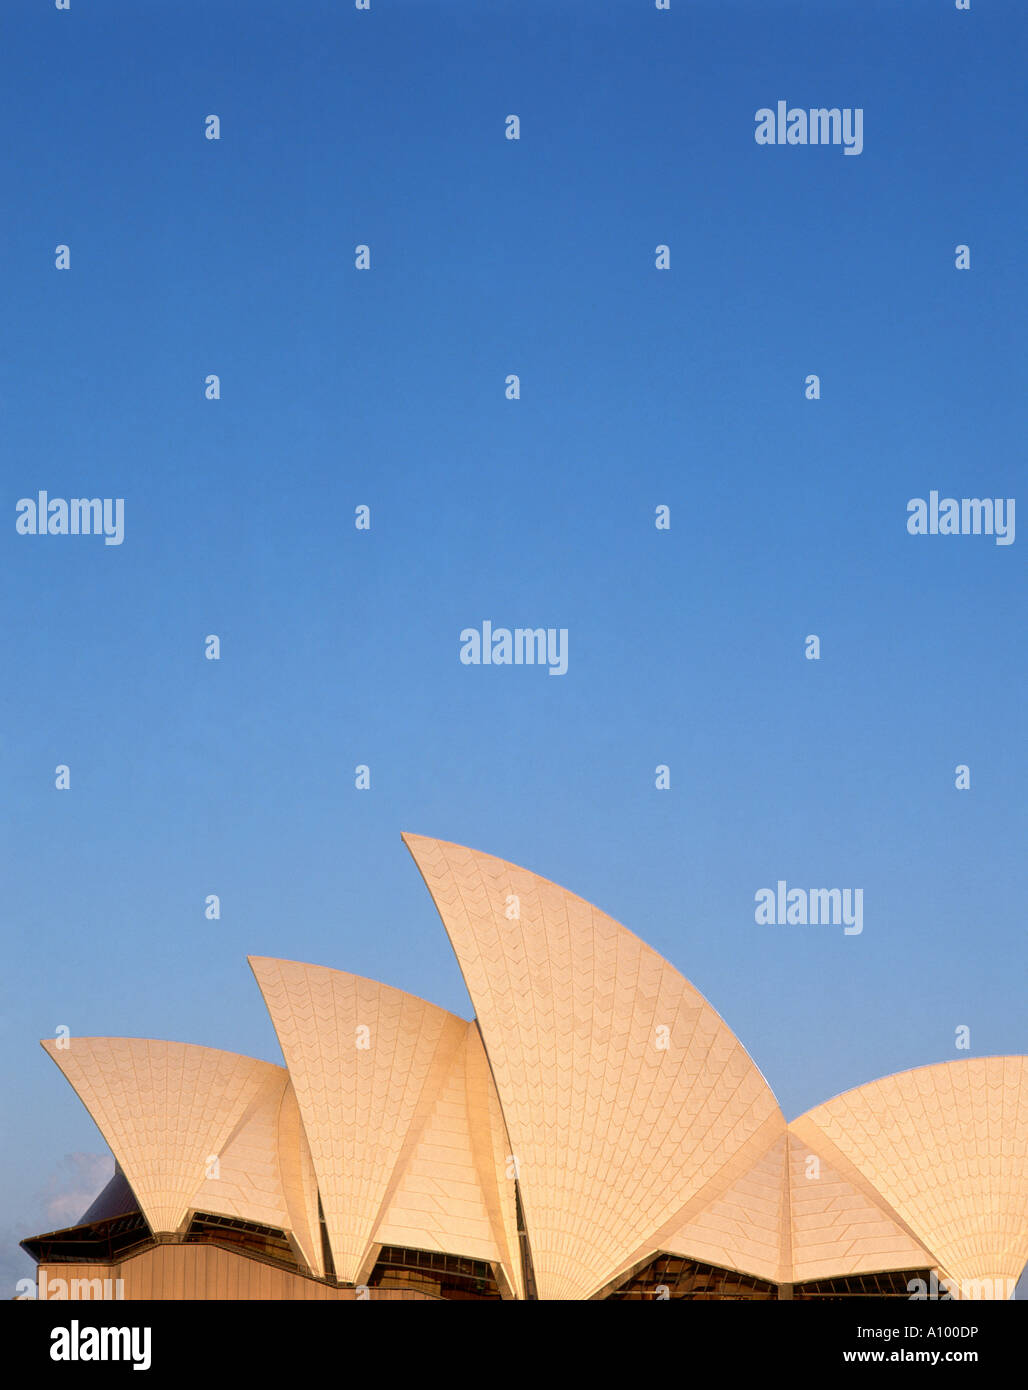 Side view of Sydney Opera House with its complex of roofs shaped like billowing sails designed by Danish architect - Stock Image